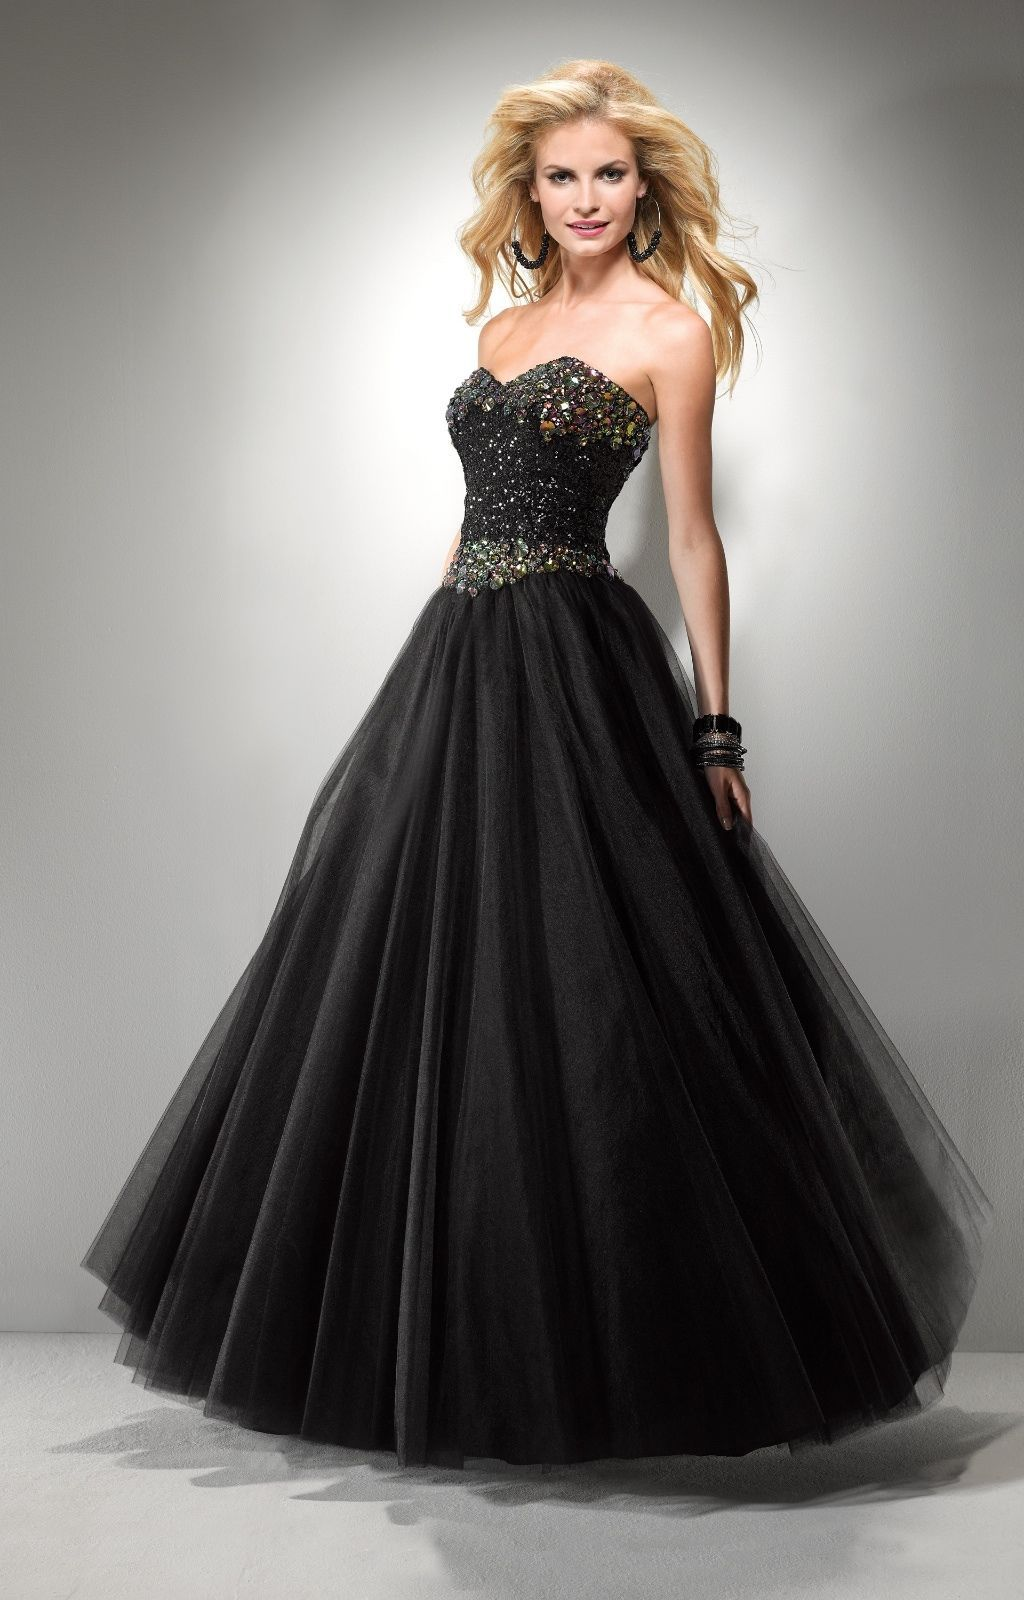 Image 3 of Sexy Strapless Black or Pink Beaded Prom Pageant Evening Gown Dress, Flirt 5794